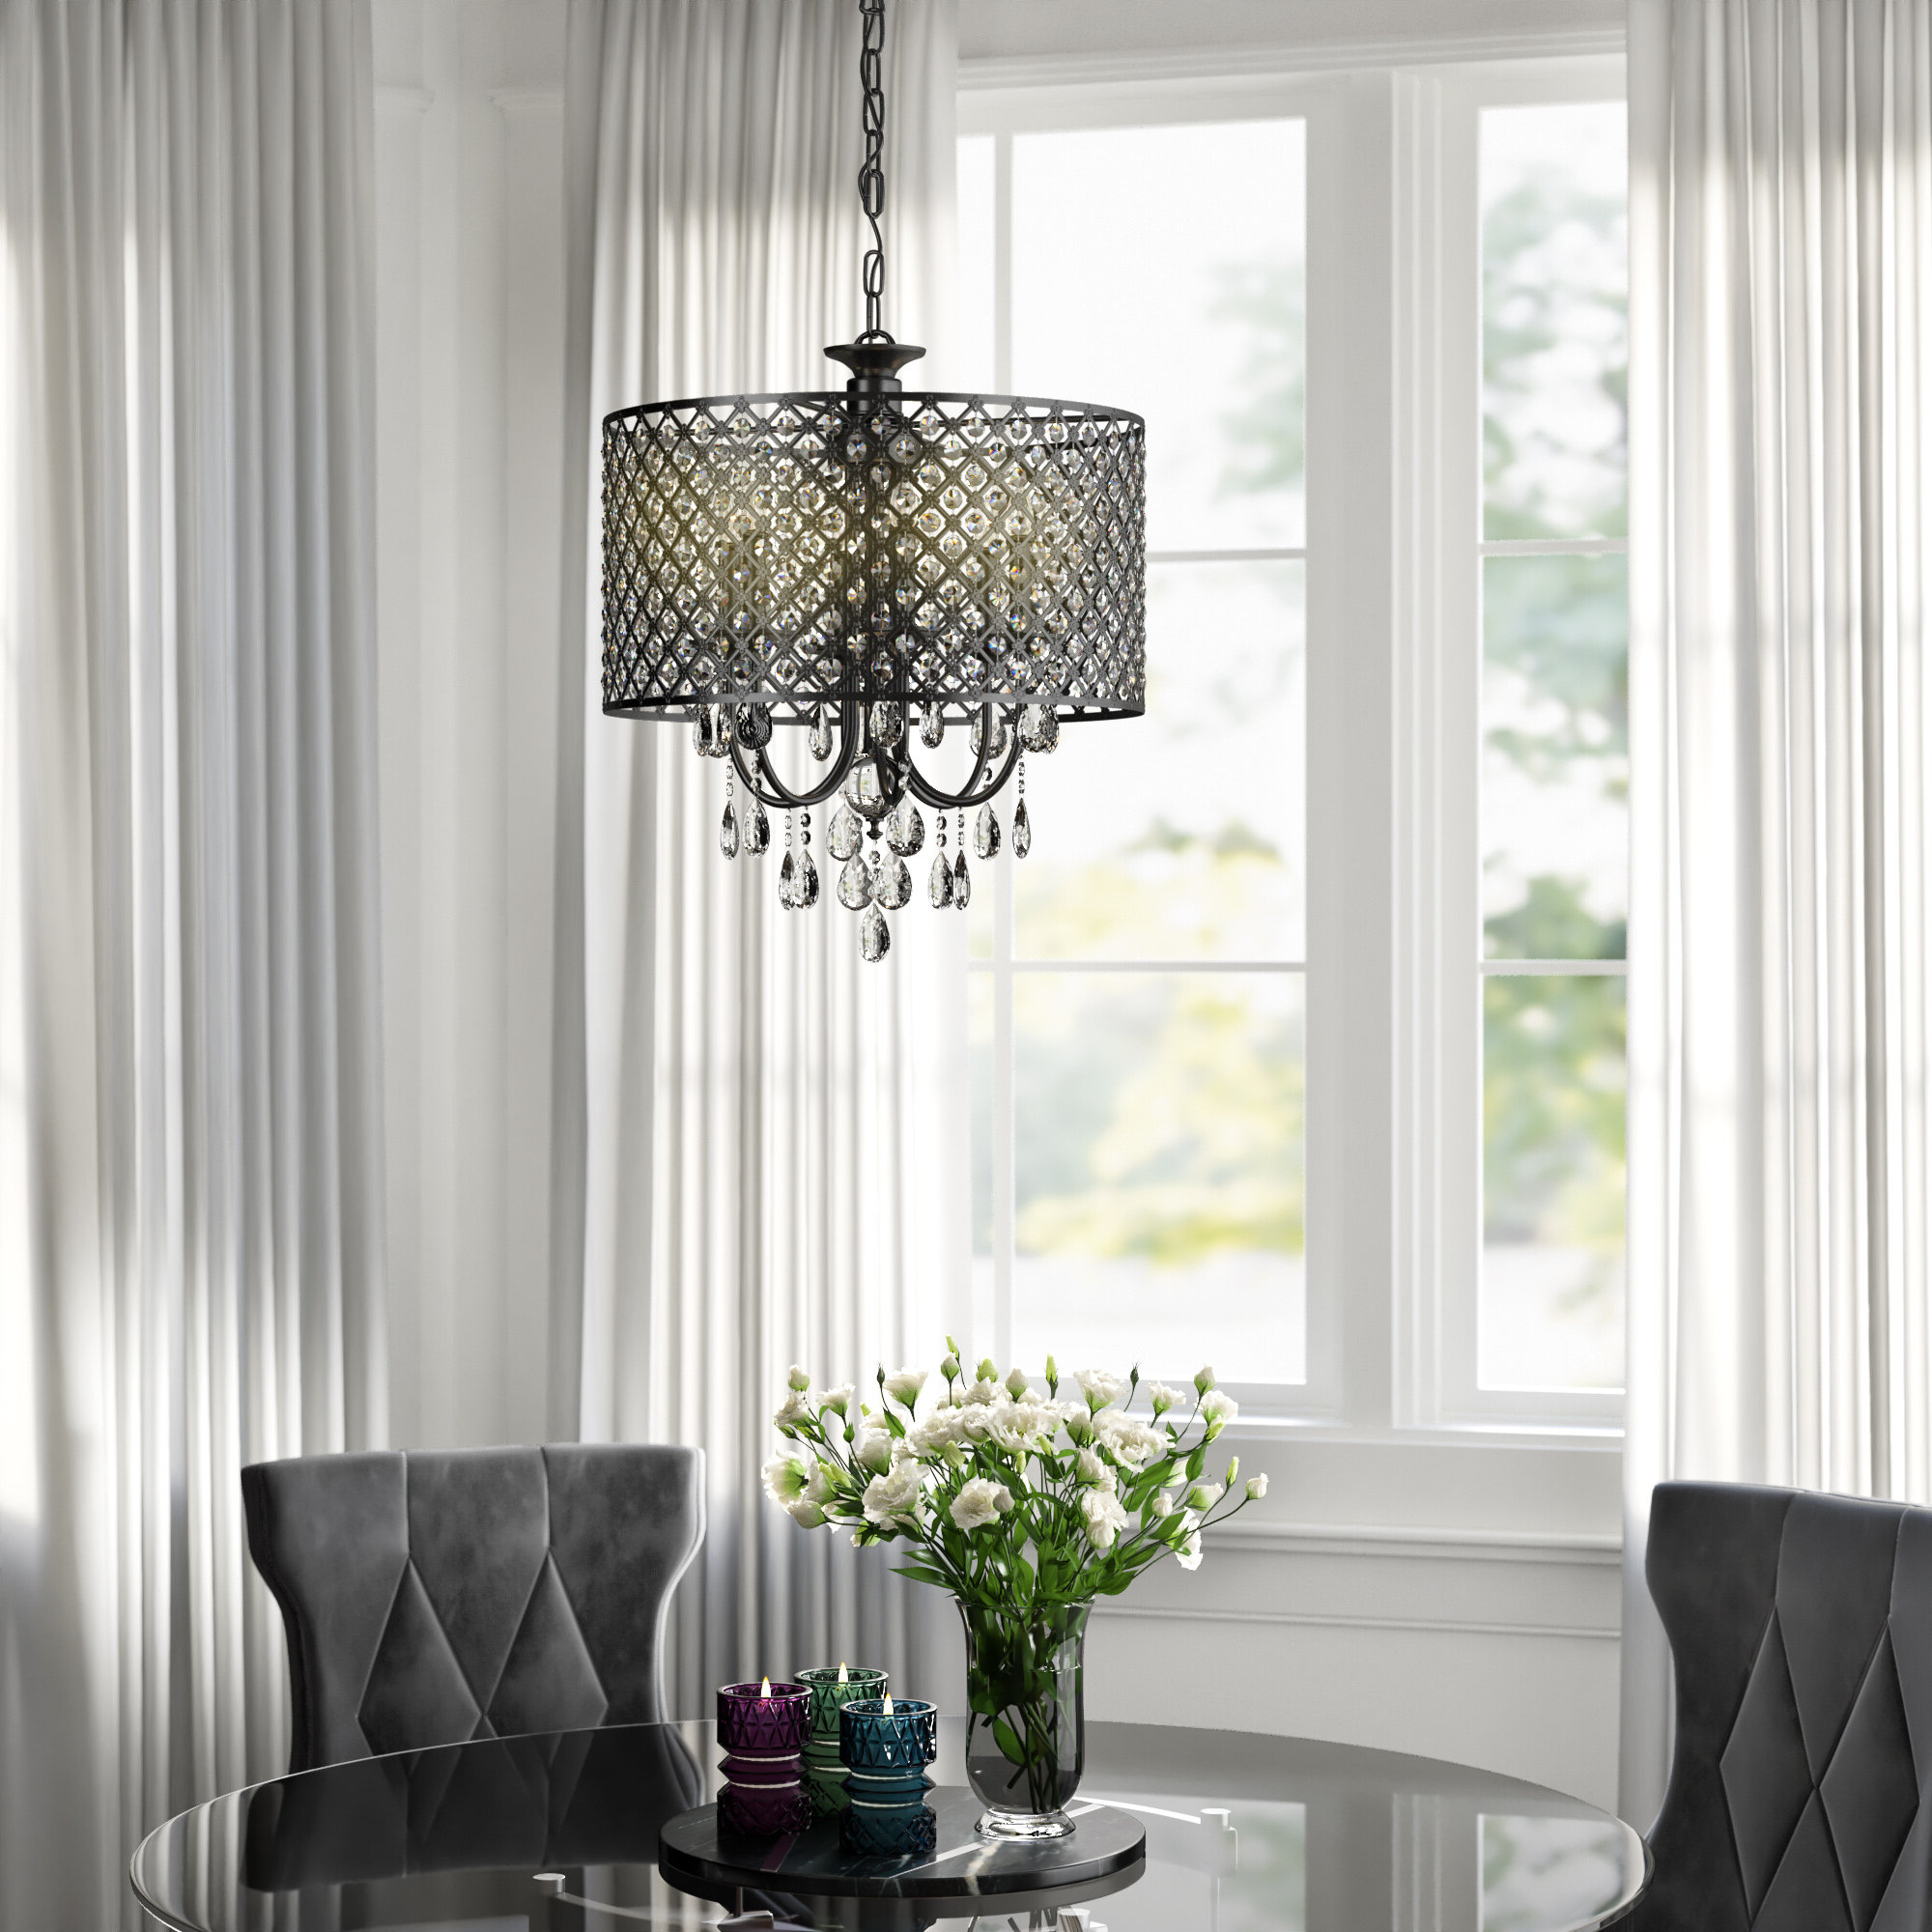 Aldgate 4 Light Crystal Chandeliers Within Newest Mckamey 4 Light Crystal Chandelier (View 11 of 25)